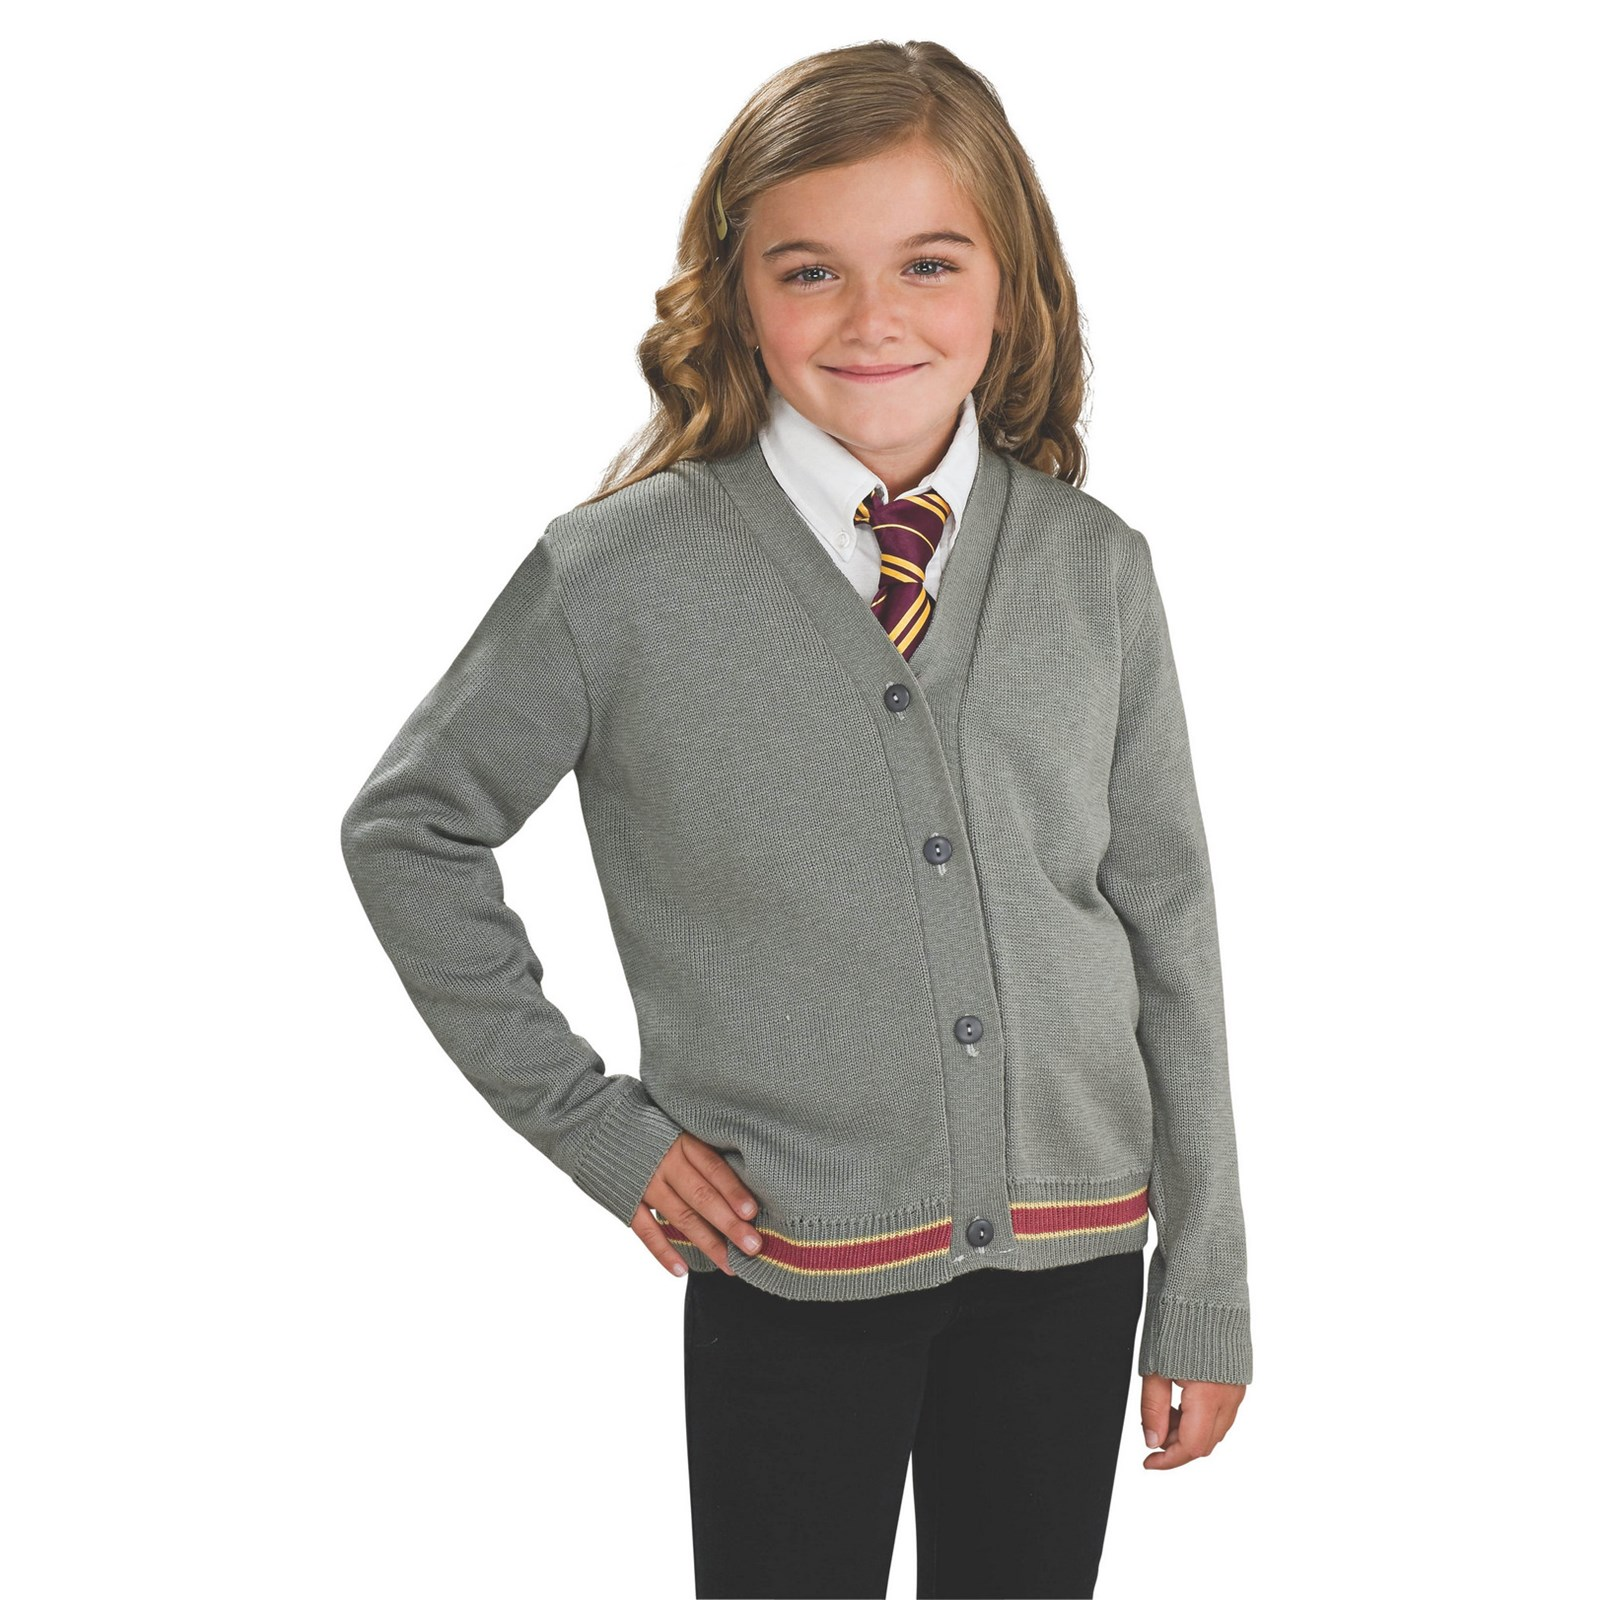 Gryffindor Cardigan and Tie - Harry Potter